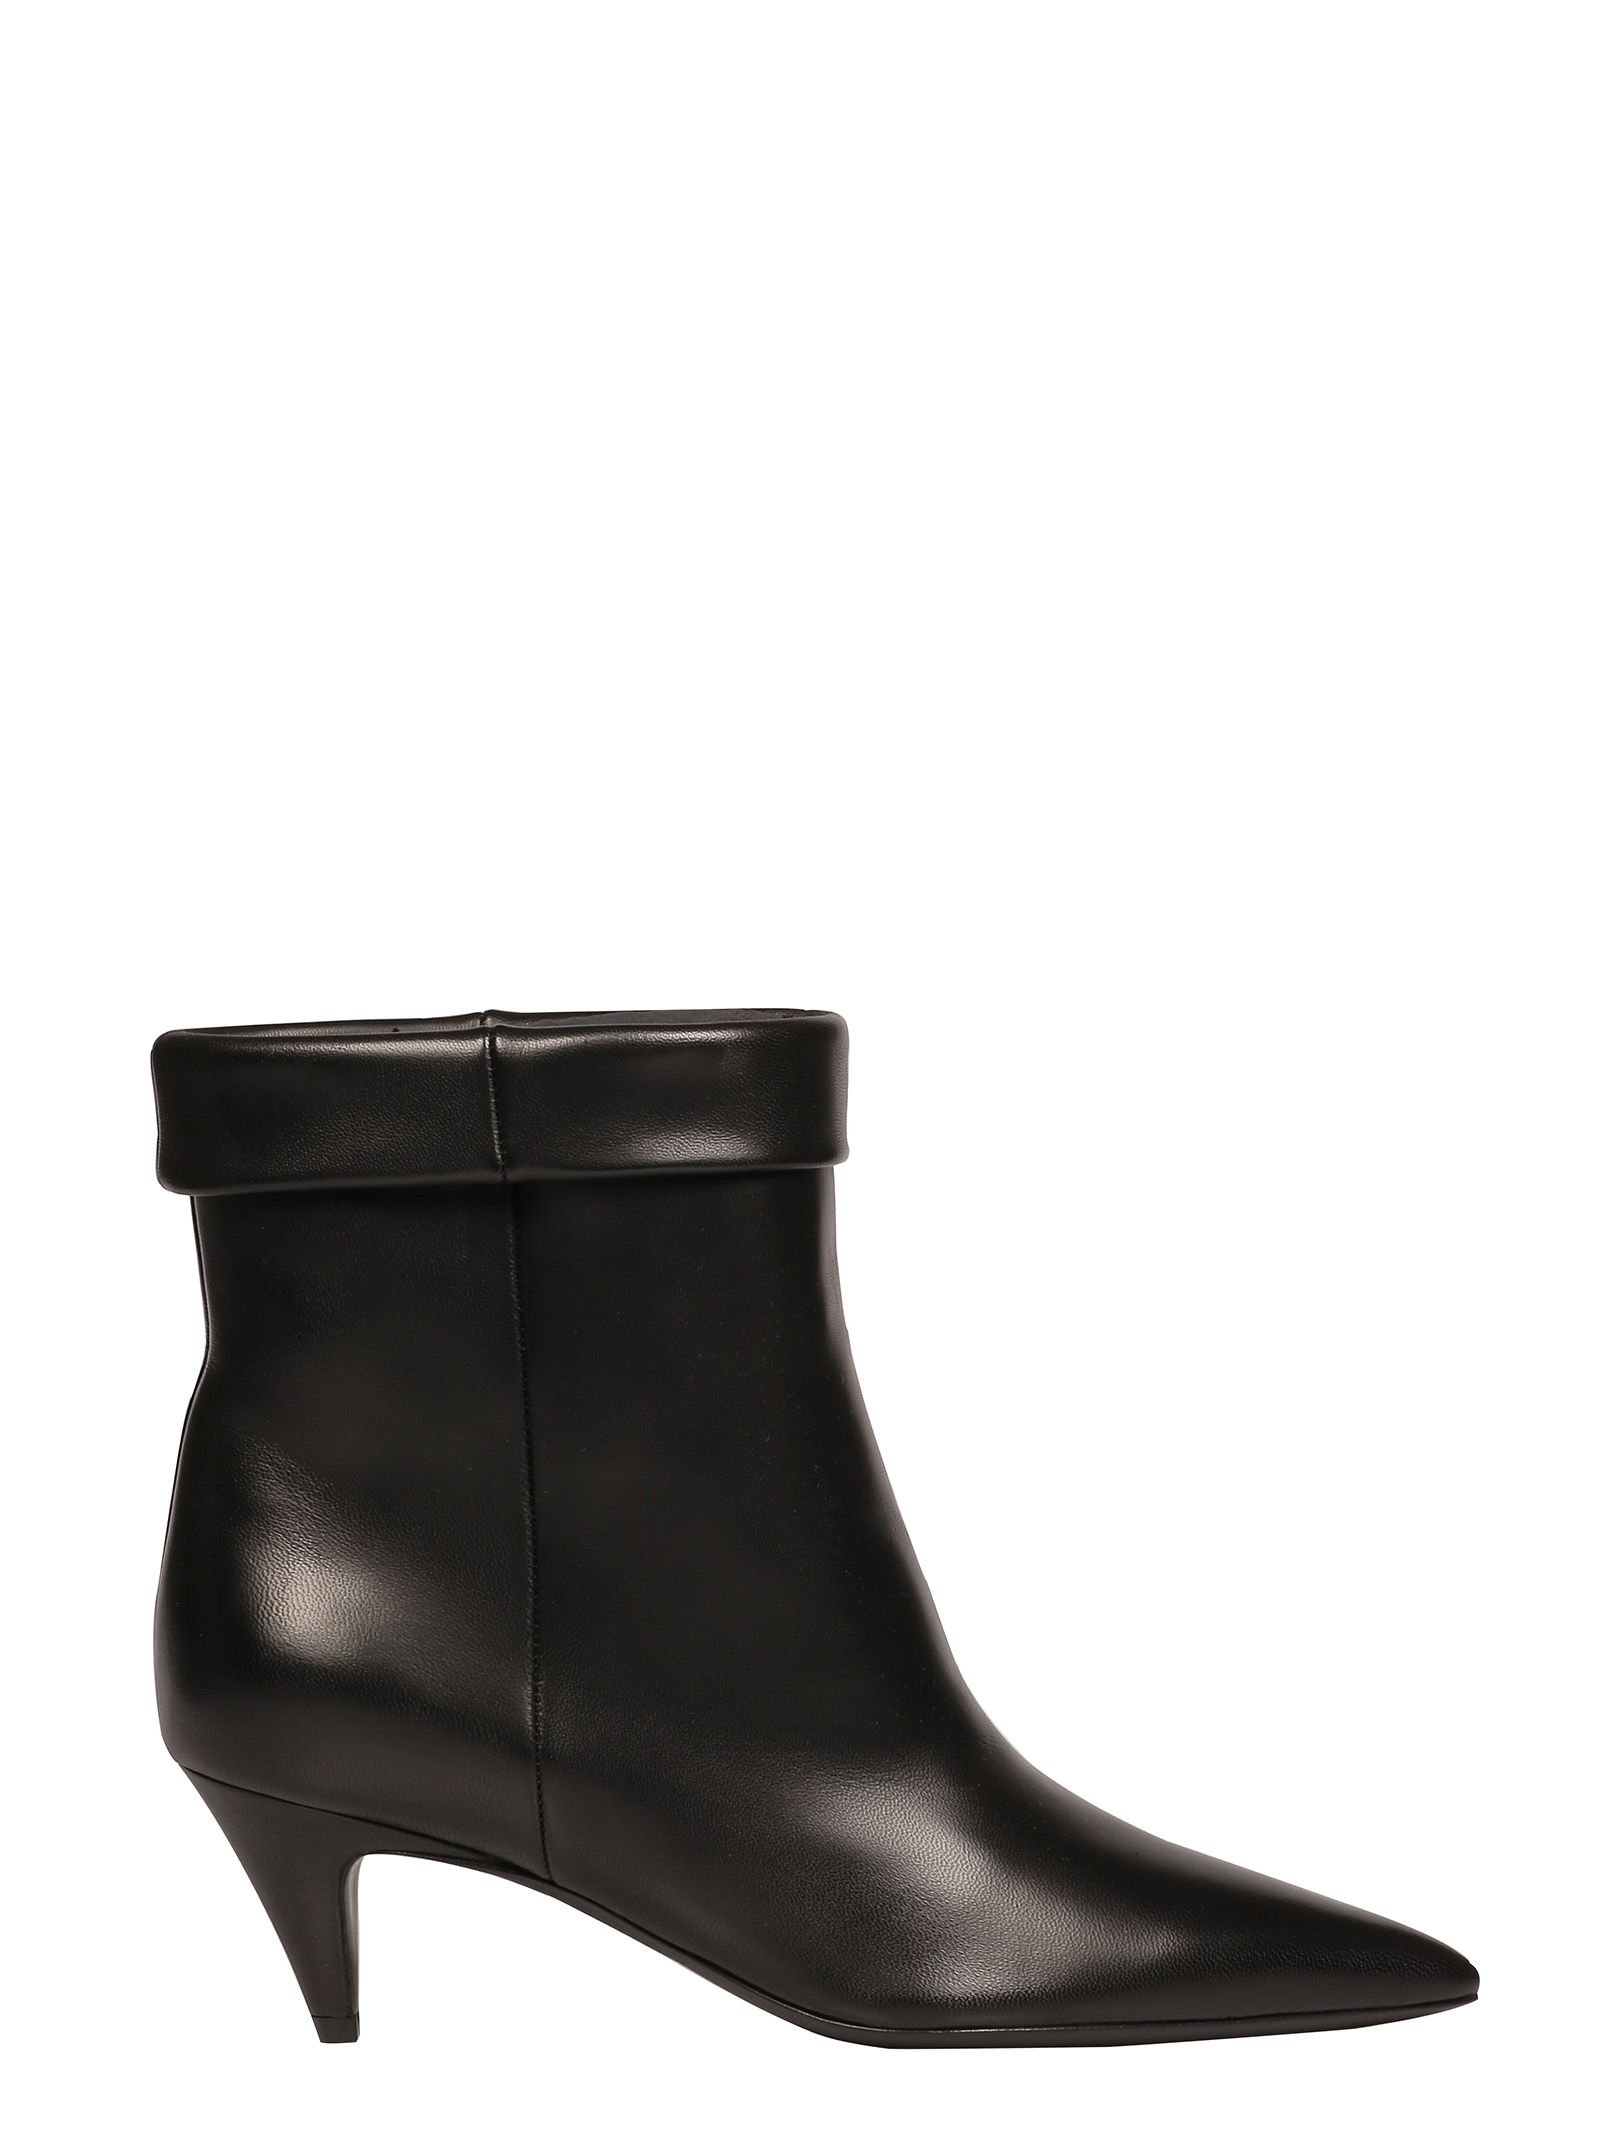 SAINT LAURENT CHARLOTTE 55 ANKLE BOOTS